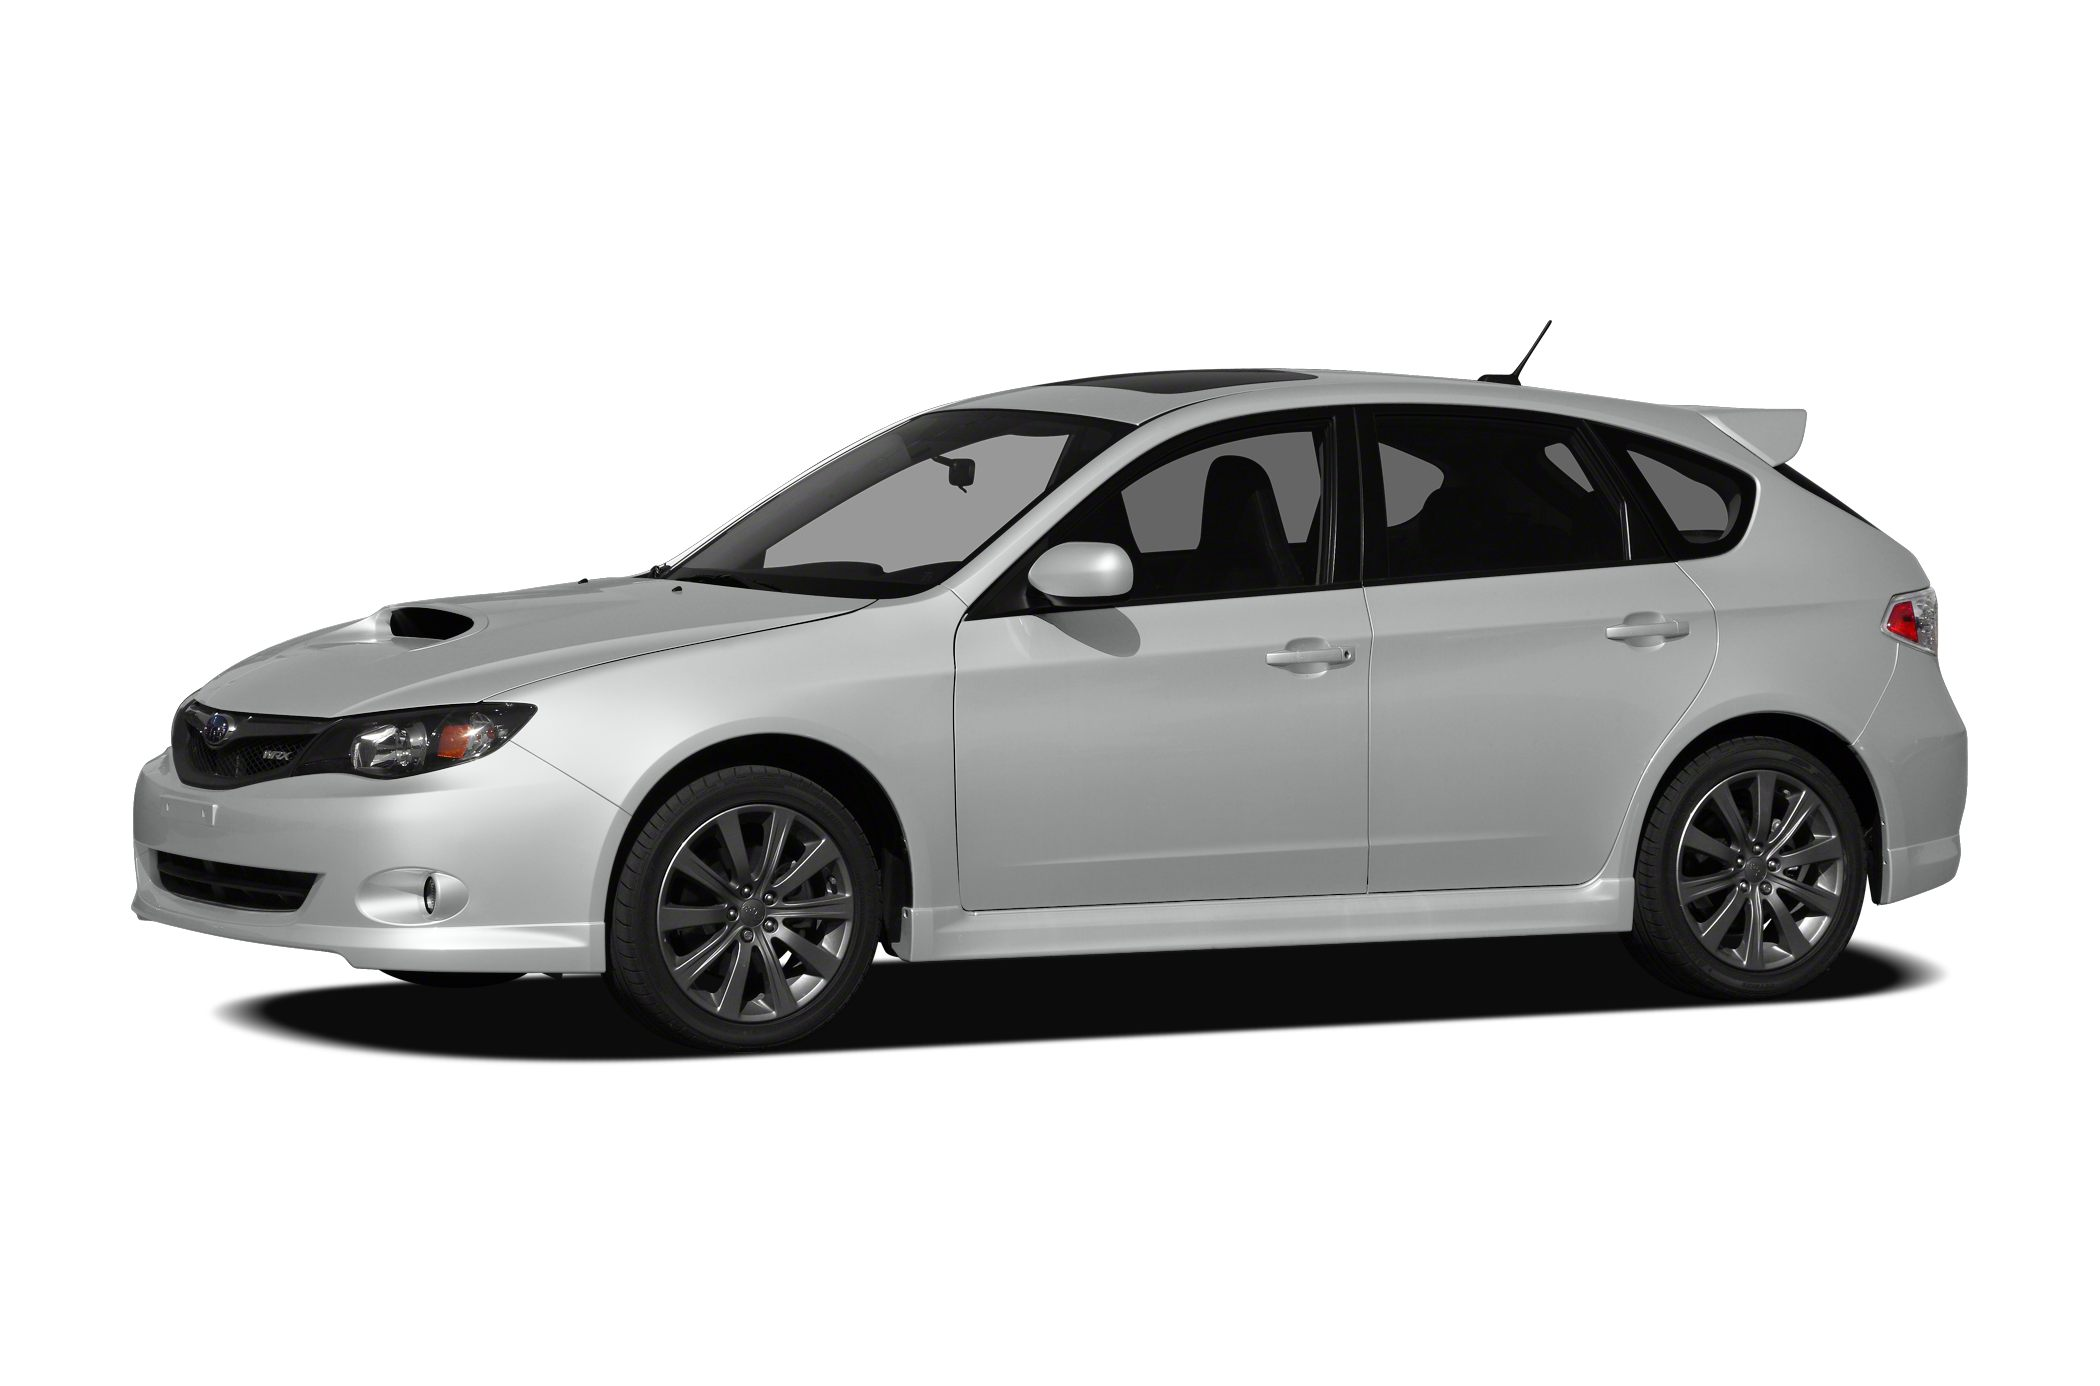 2009 Subaru Impreza WRX OUR PRICESYoure probably wondering why our prices are so much lower than